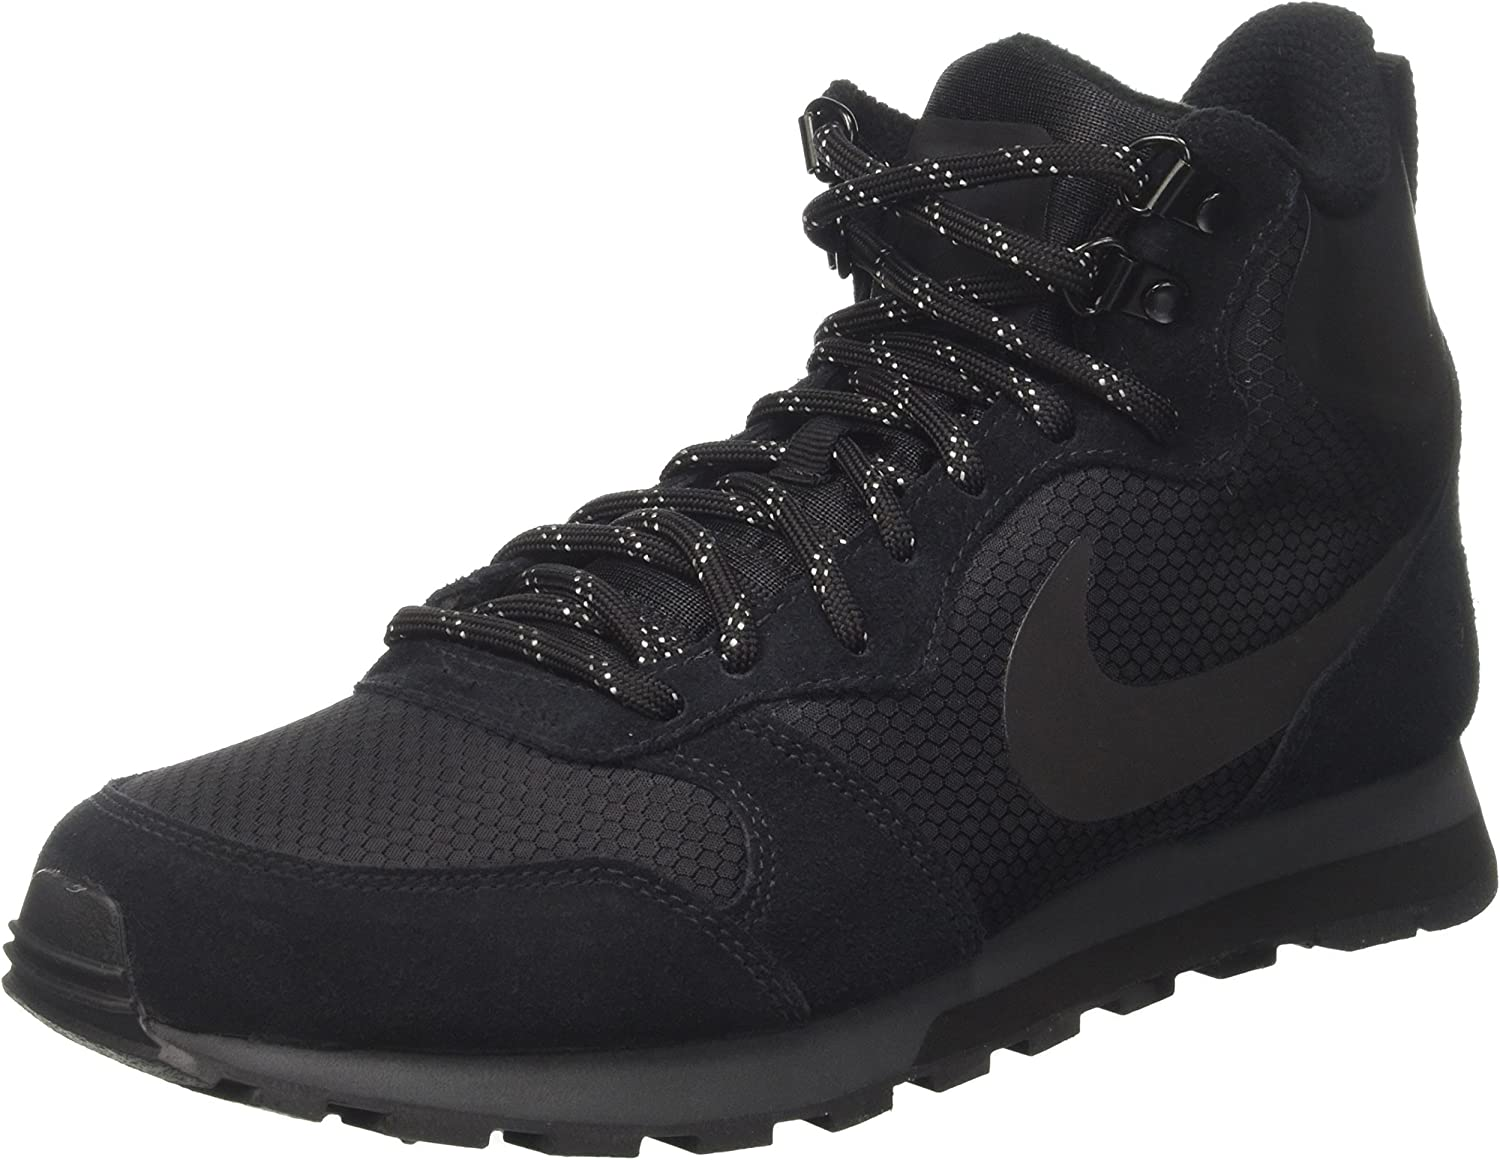 Nike Men's Md Runner 2 Mid Prem Gymnastics shoes